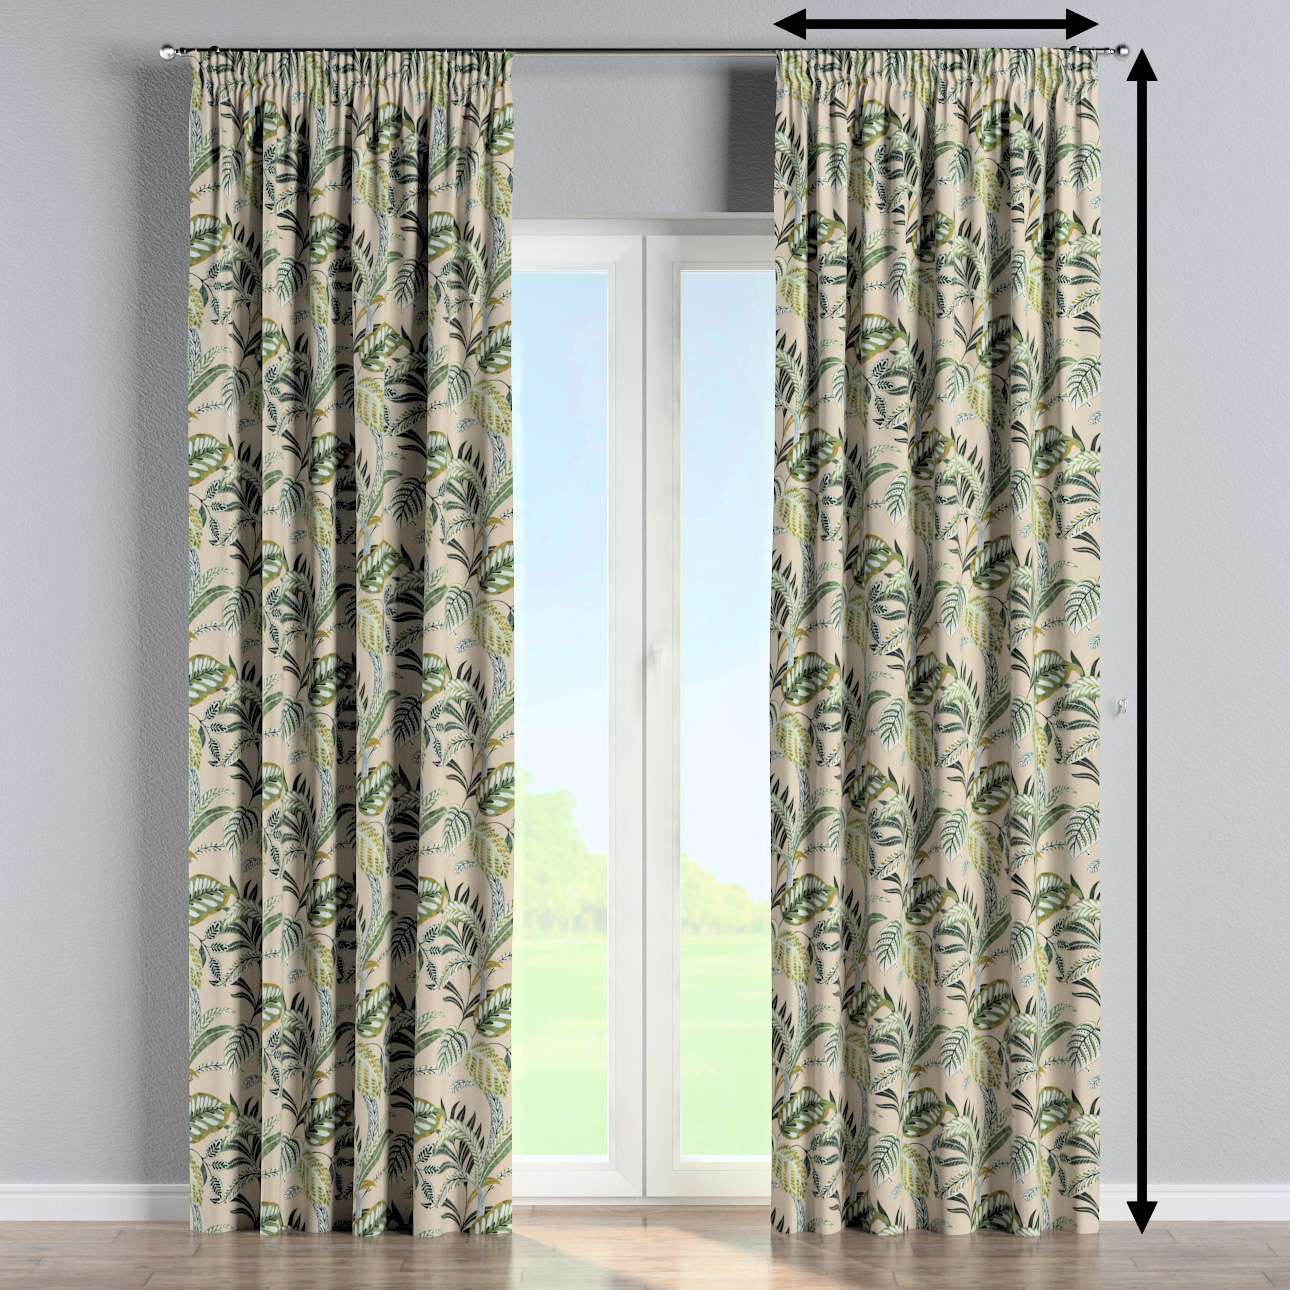 Pencil pleat curtain in collection Tropical Island, fabric: 142-96